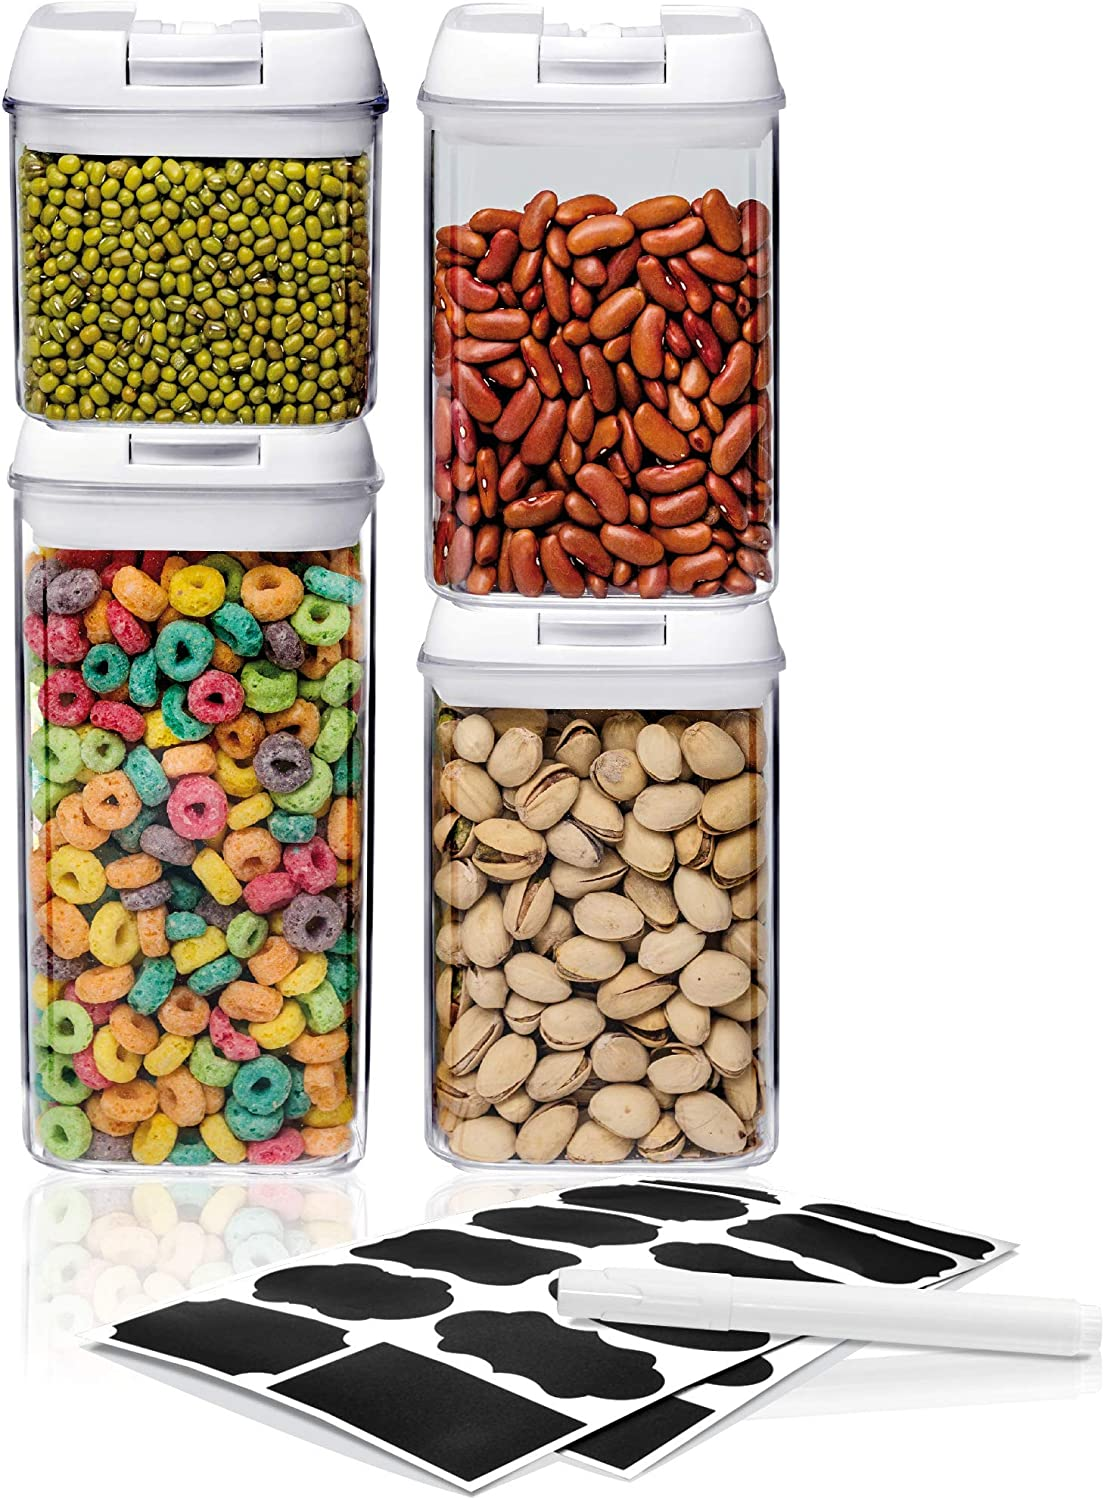 Airtight Food Storage Container Sets - Larger Sizes |Leak Proof & Interchangeable Lids| Pantry Organization| Premium Quality Clear Plastic with White Lids| BPA FREE (4-Piece Set)